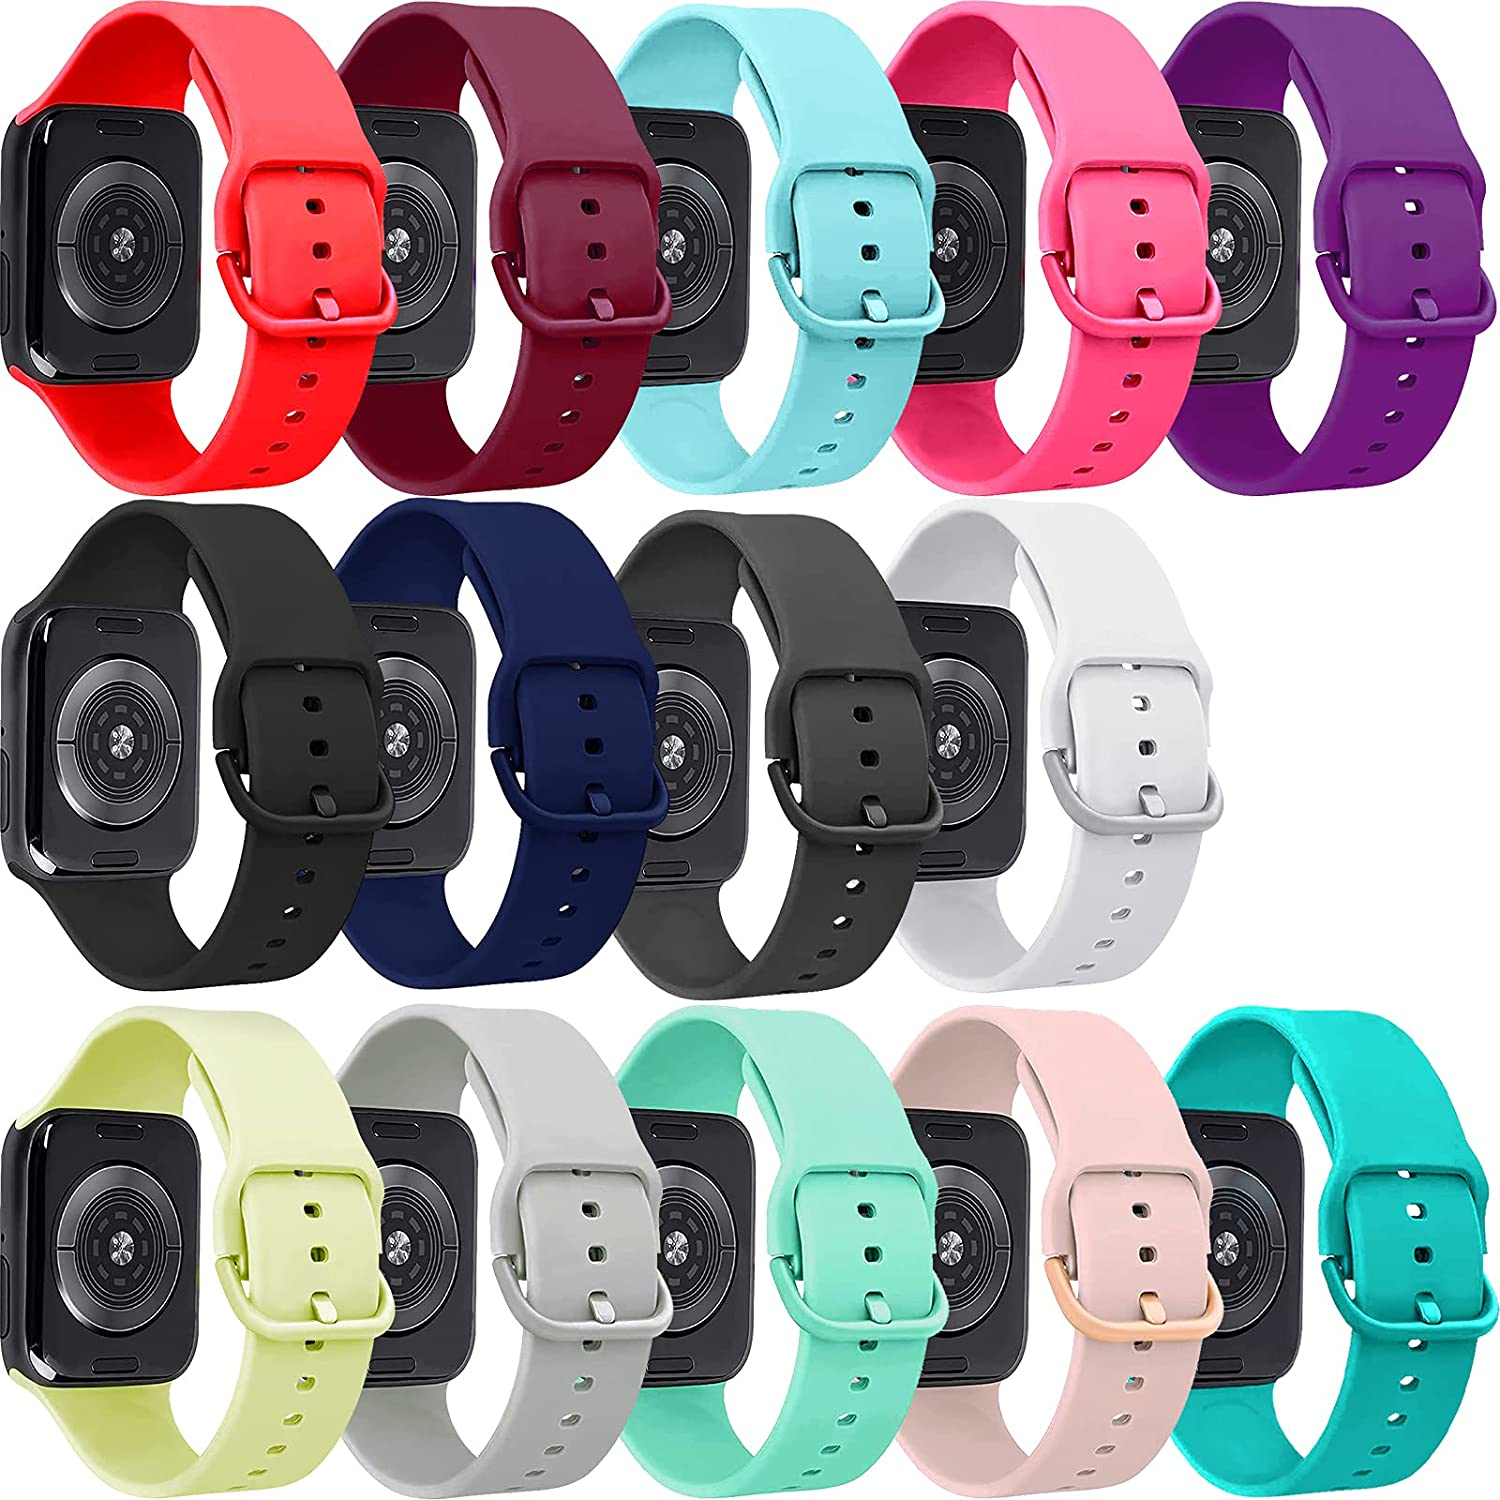 14 pack Bands Compatible with Apple Watch Band 42mm 44mm, Each Silicone Replacement Strap with Same Color of Band Classic Clasp for iWatch Series SE 6 5 4 3 2 1, Women Men